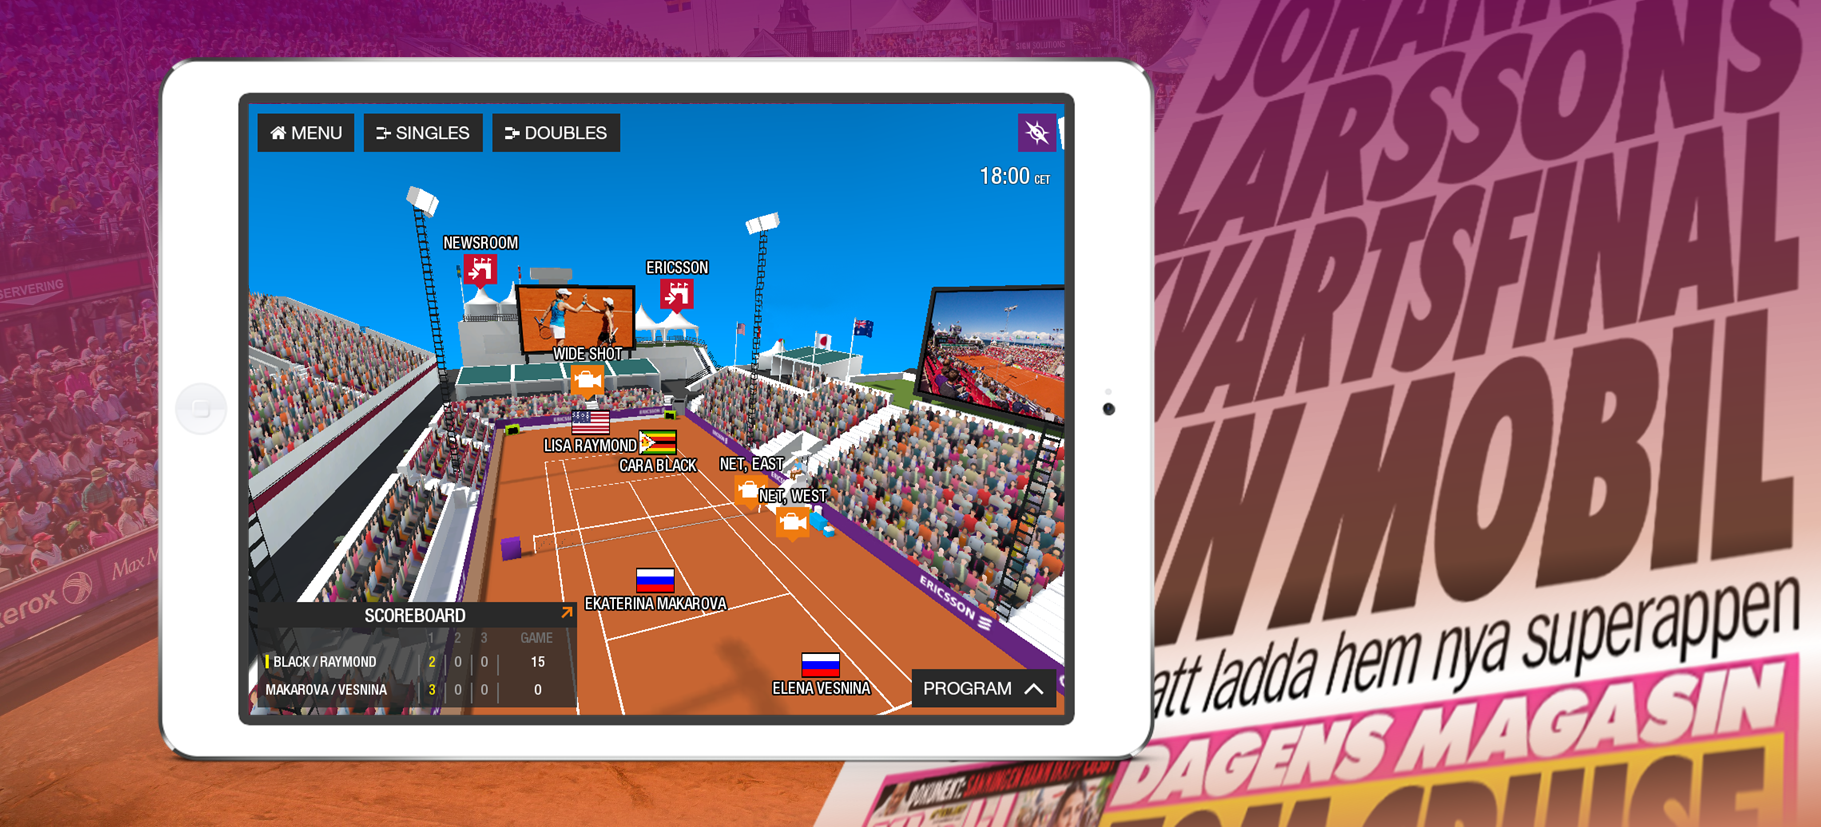 The official TV-streaming app for the women's tennis tournament in Båstad 2015